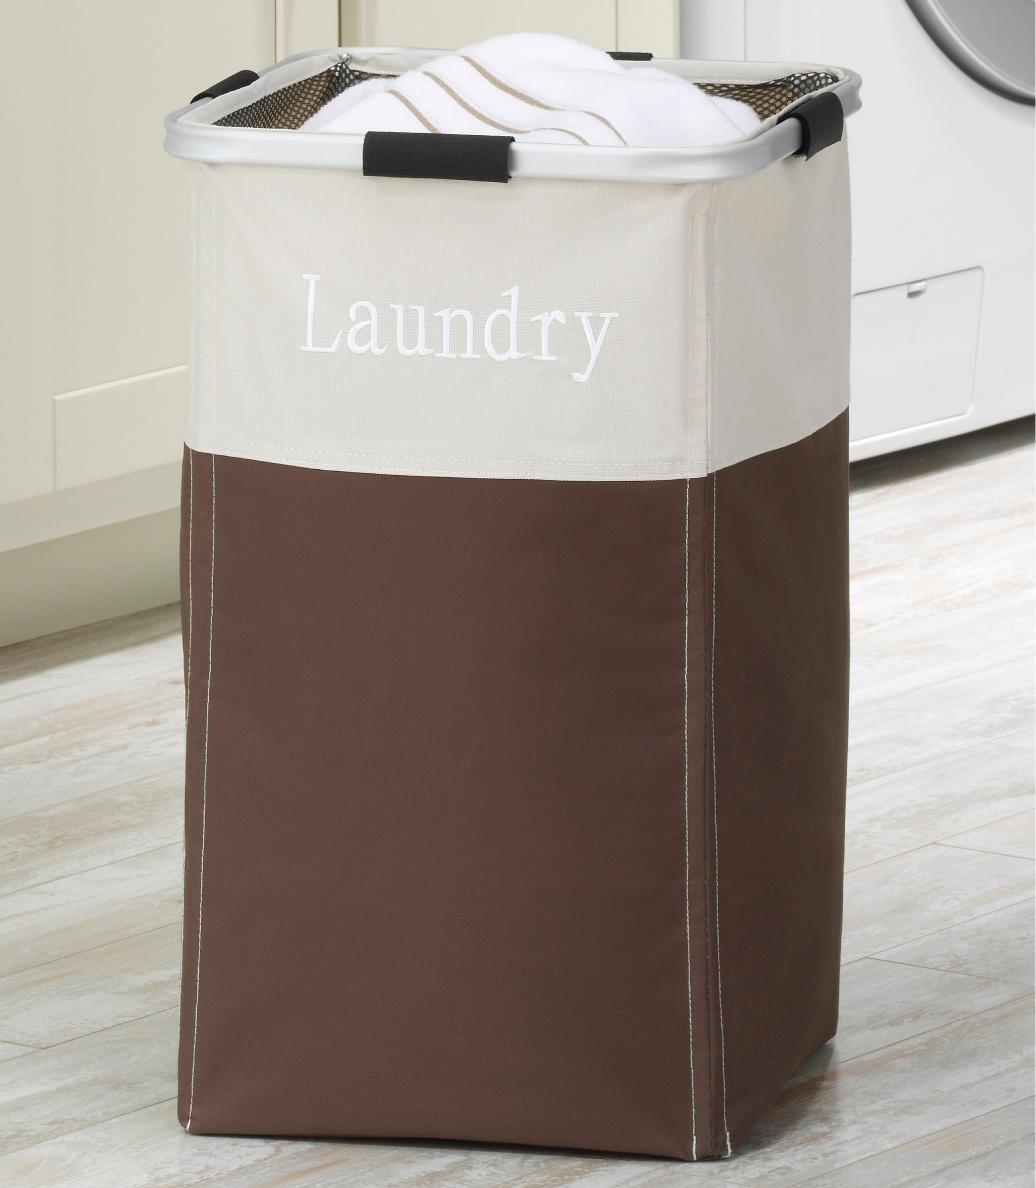 Contemporary Rubbermaid Laundry Hamper Sierra